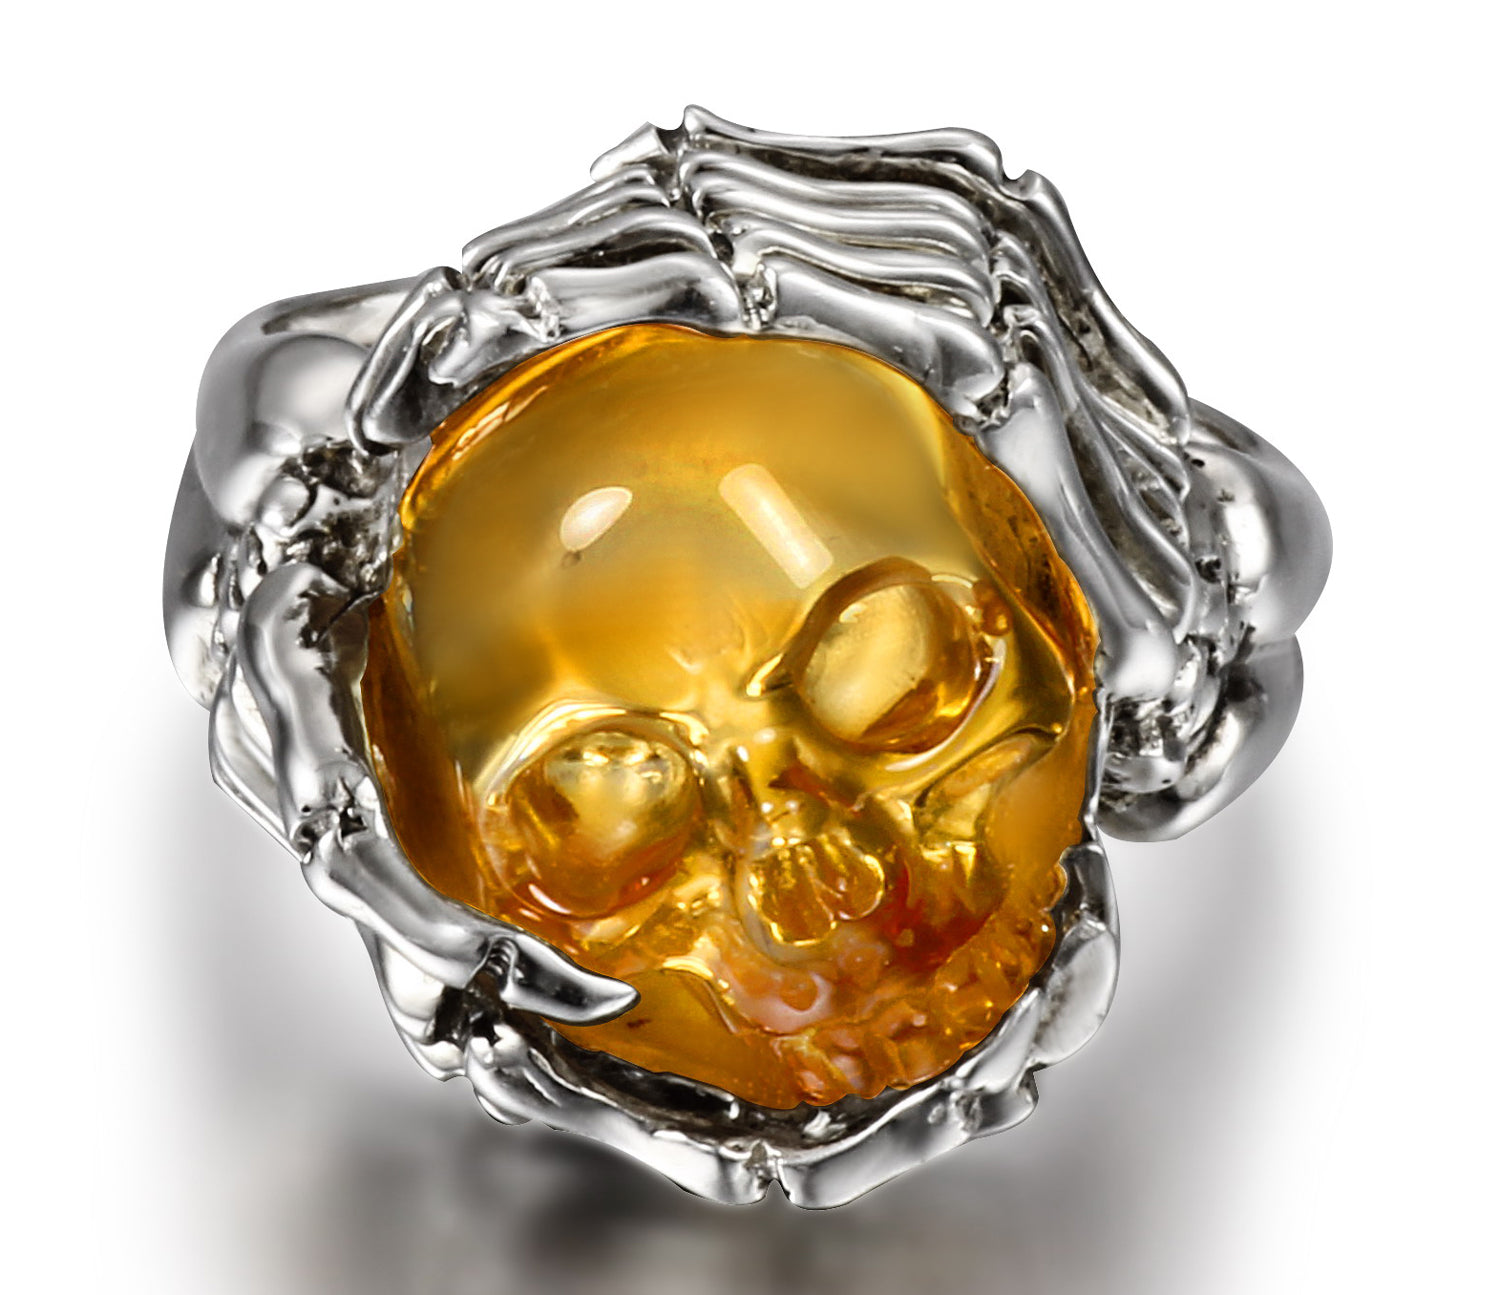 Remember Forever - Ring of Citrine Carved Gemstone Crystal Skull in Sterling Silver Skeletal Hands1